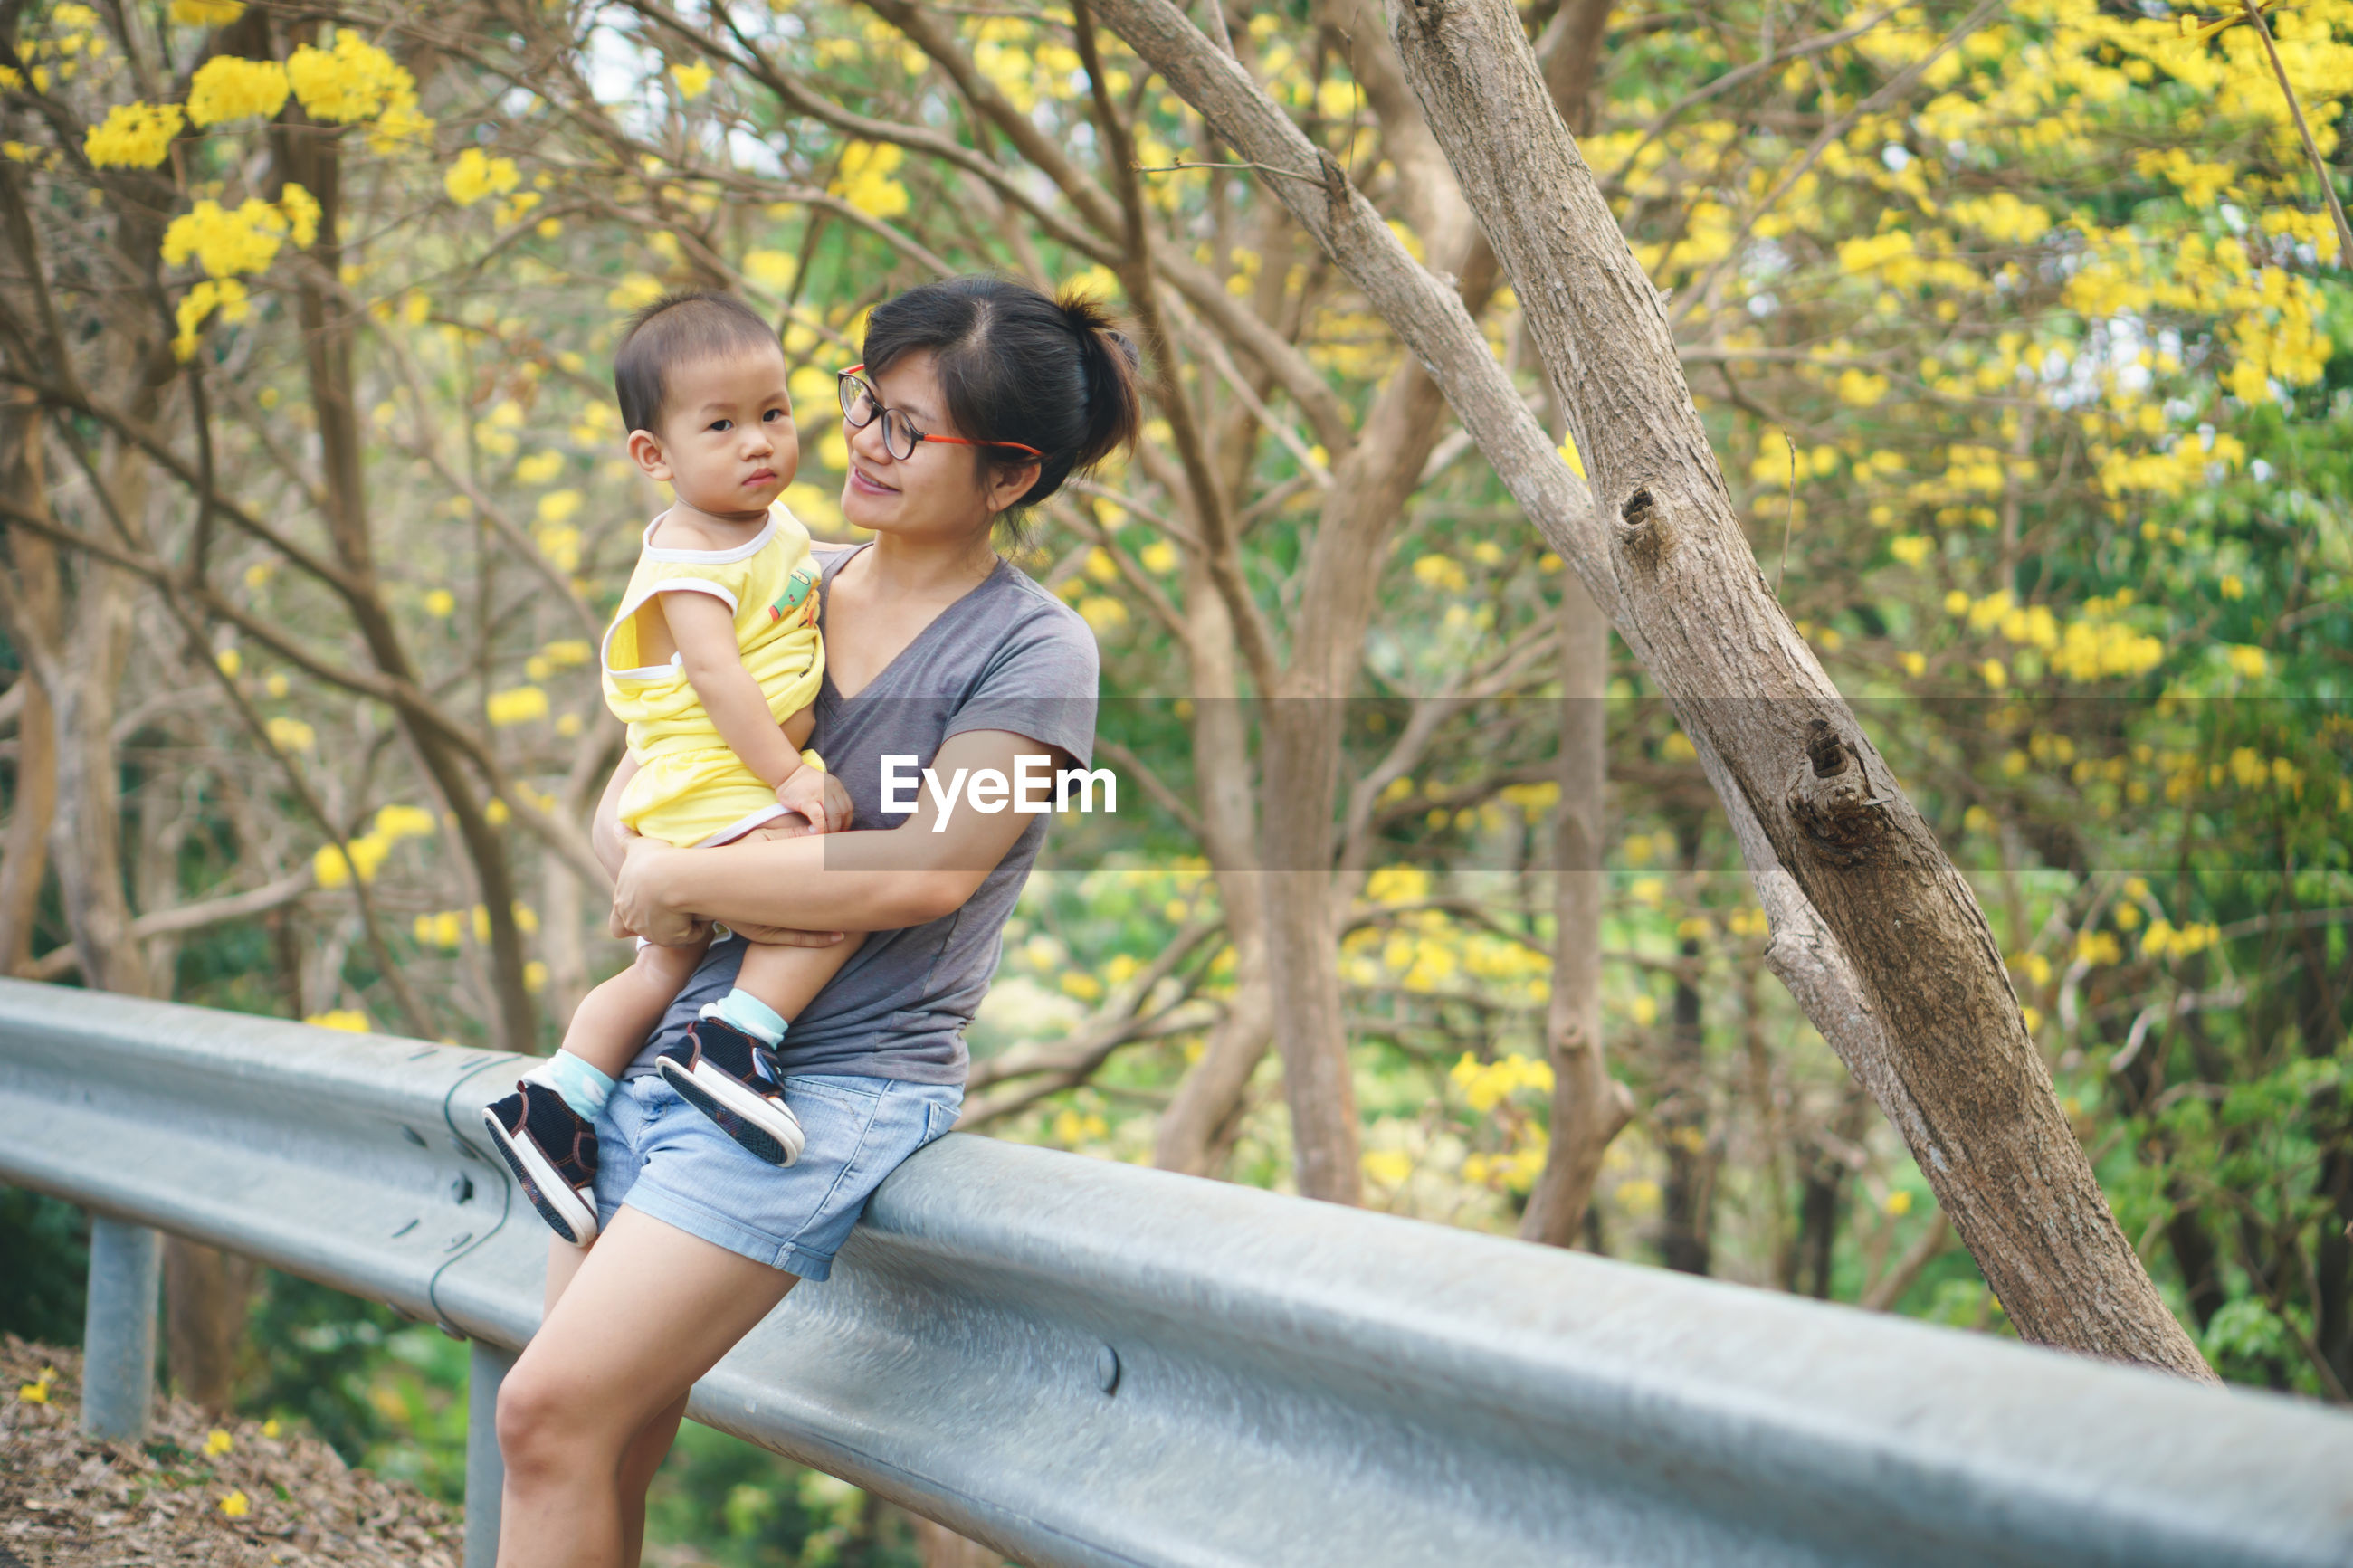 Smiling woman with son leaning on railing in forest